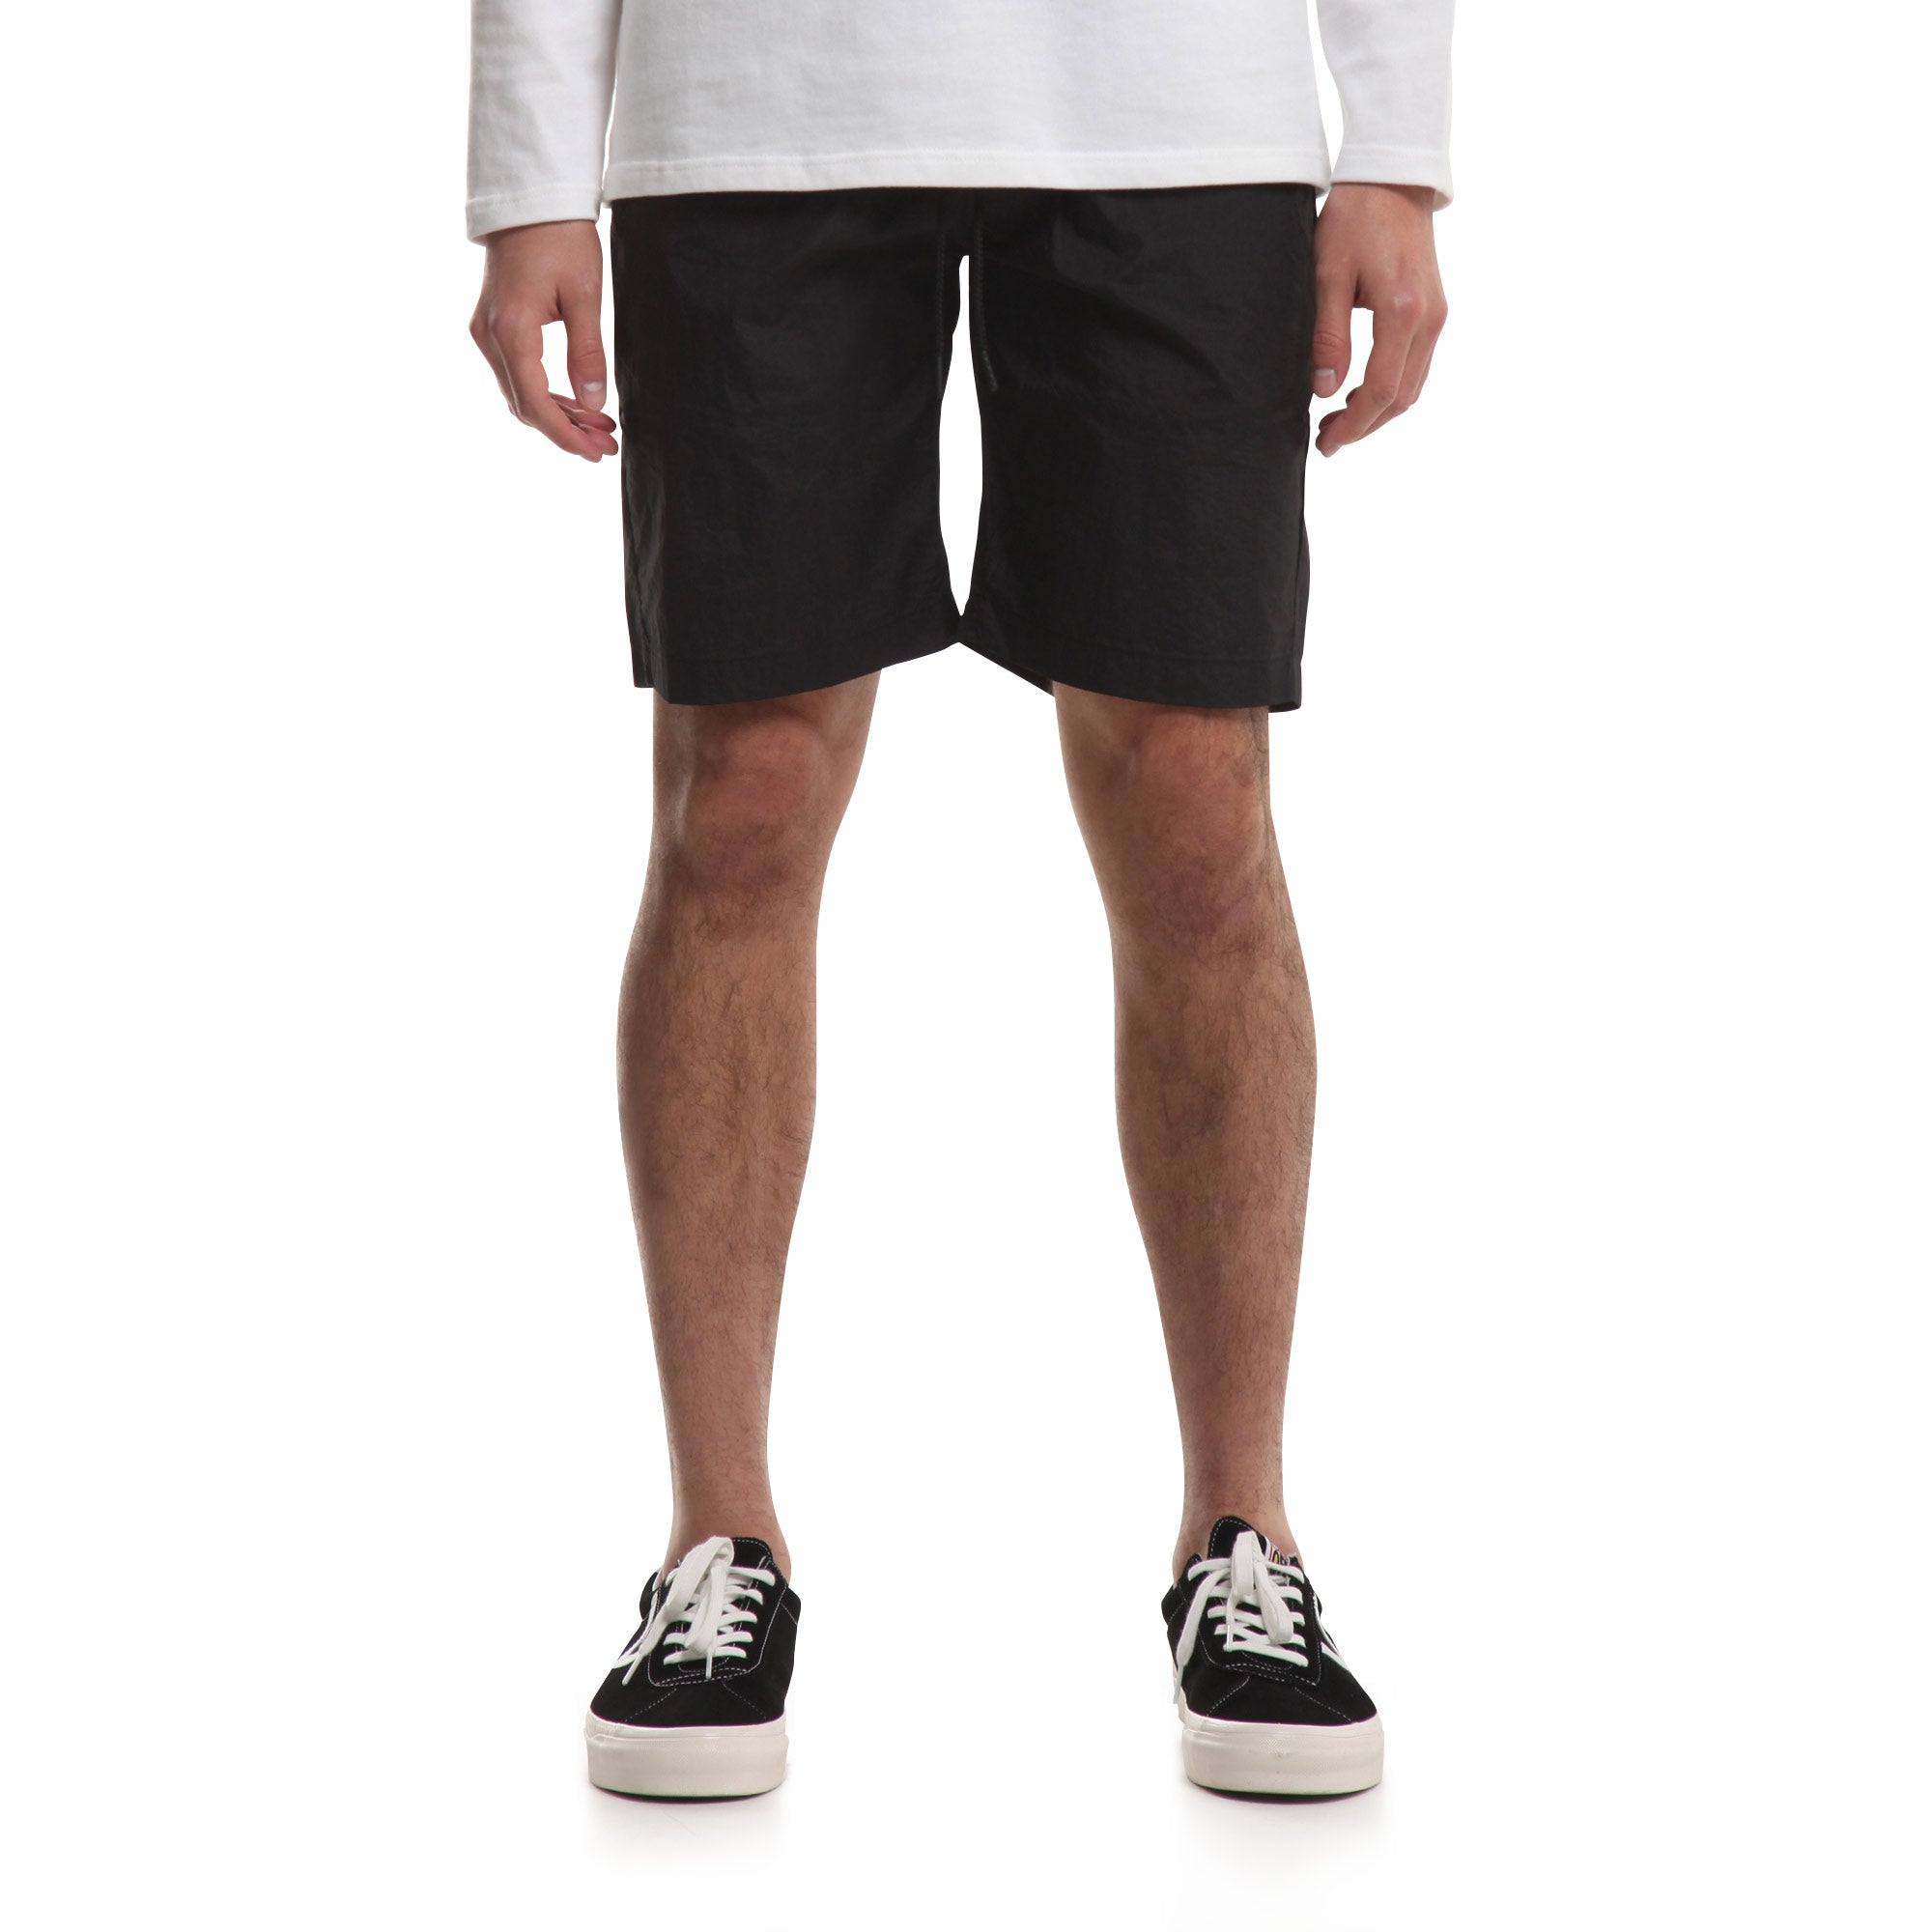 Nylon Sprinter Short - Black